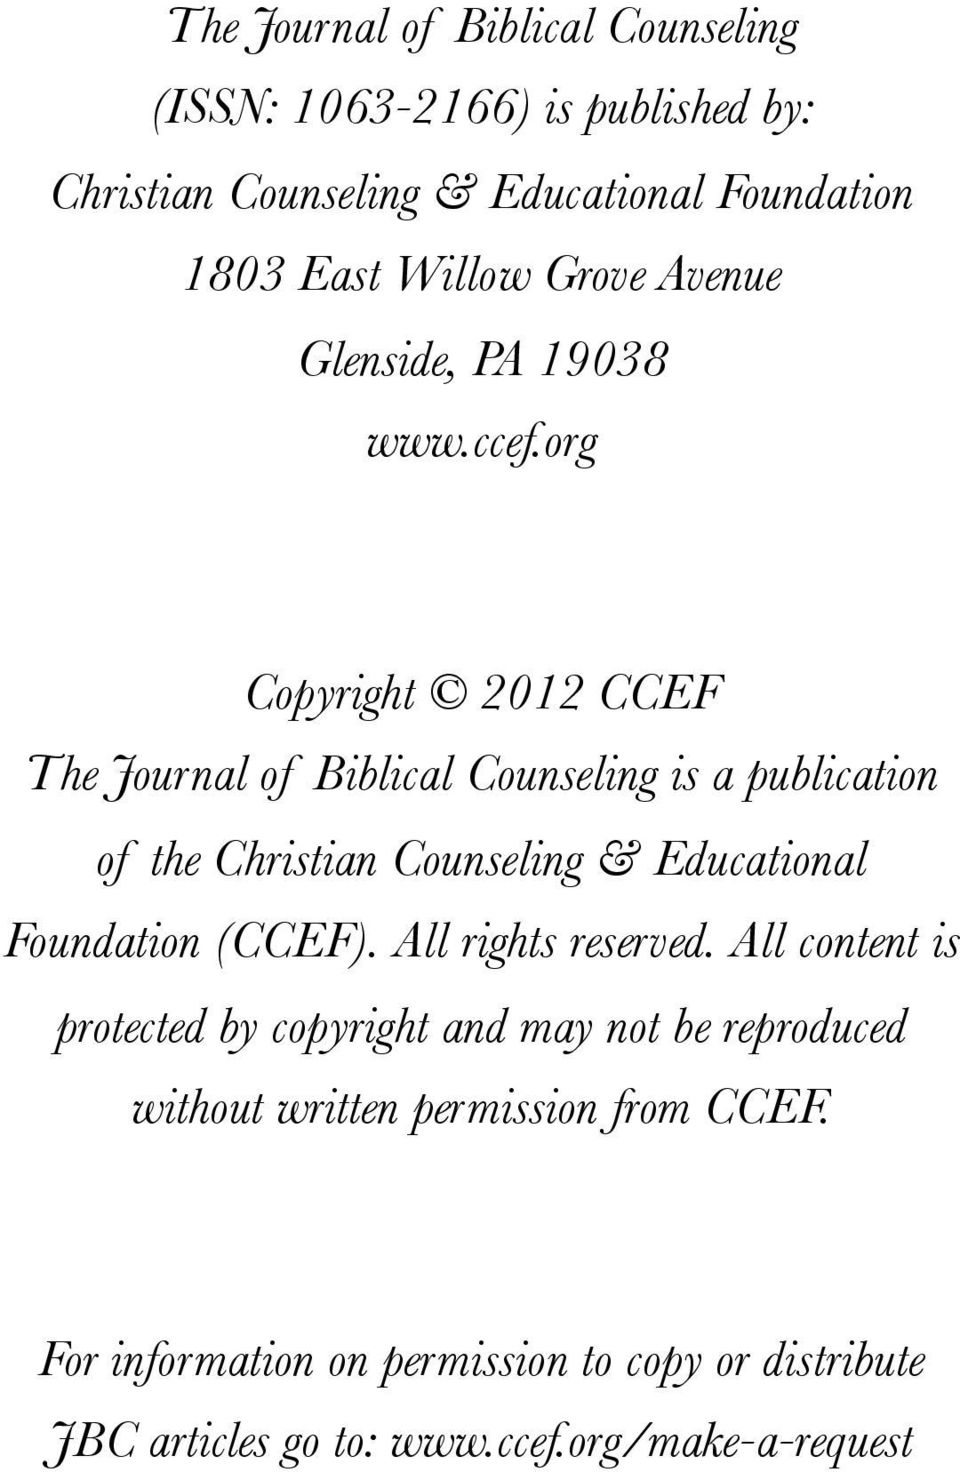 org Copyright 2012 CCEF The Journal of Biblical Counseling is a publication of the Christian Counseling & Educational Foundation